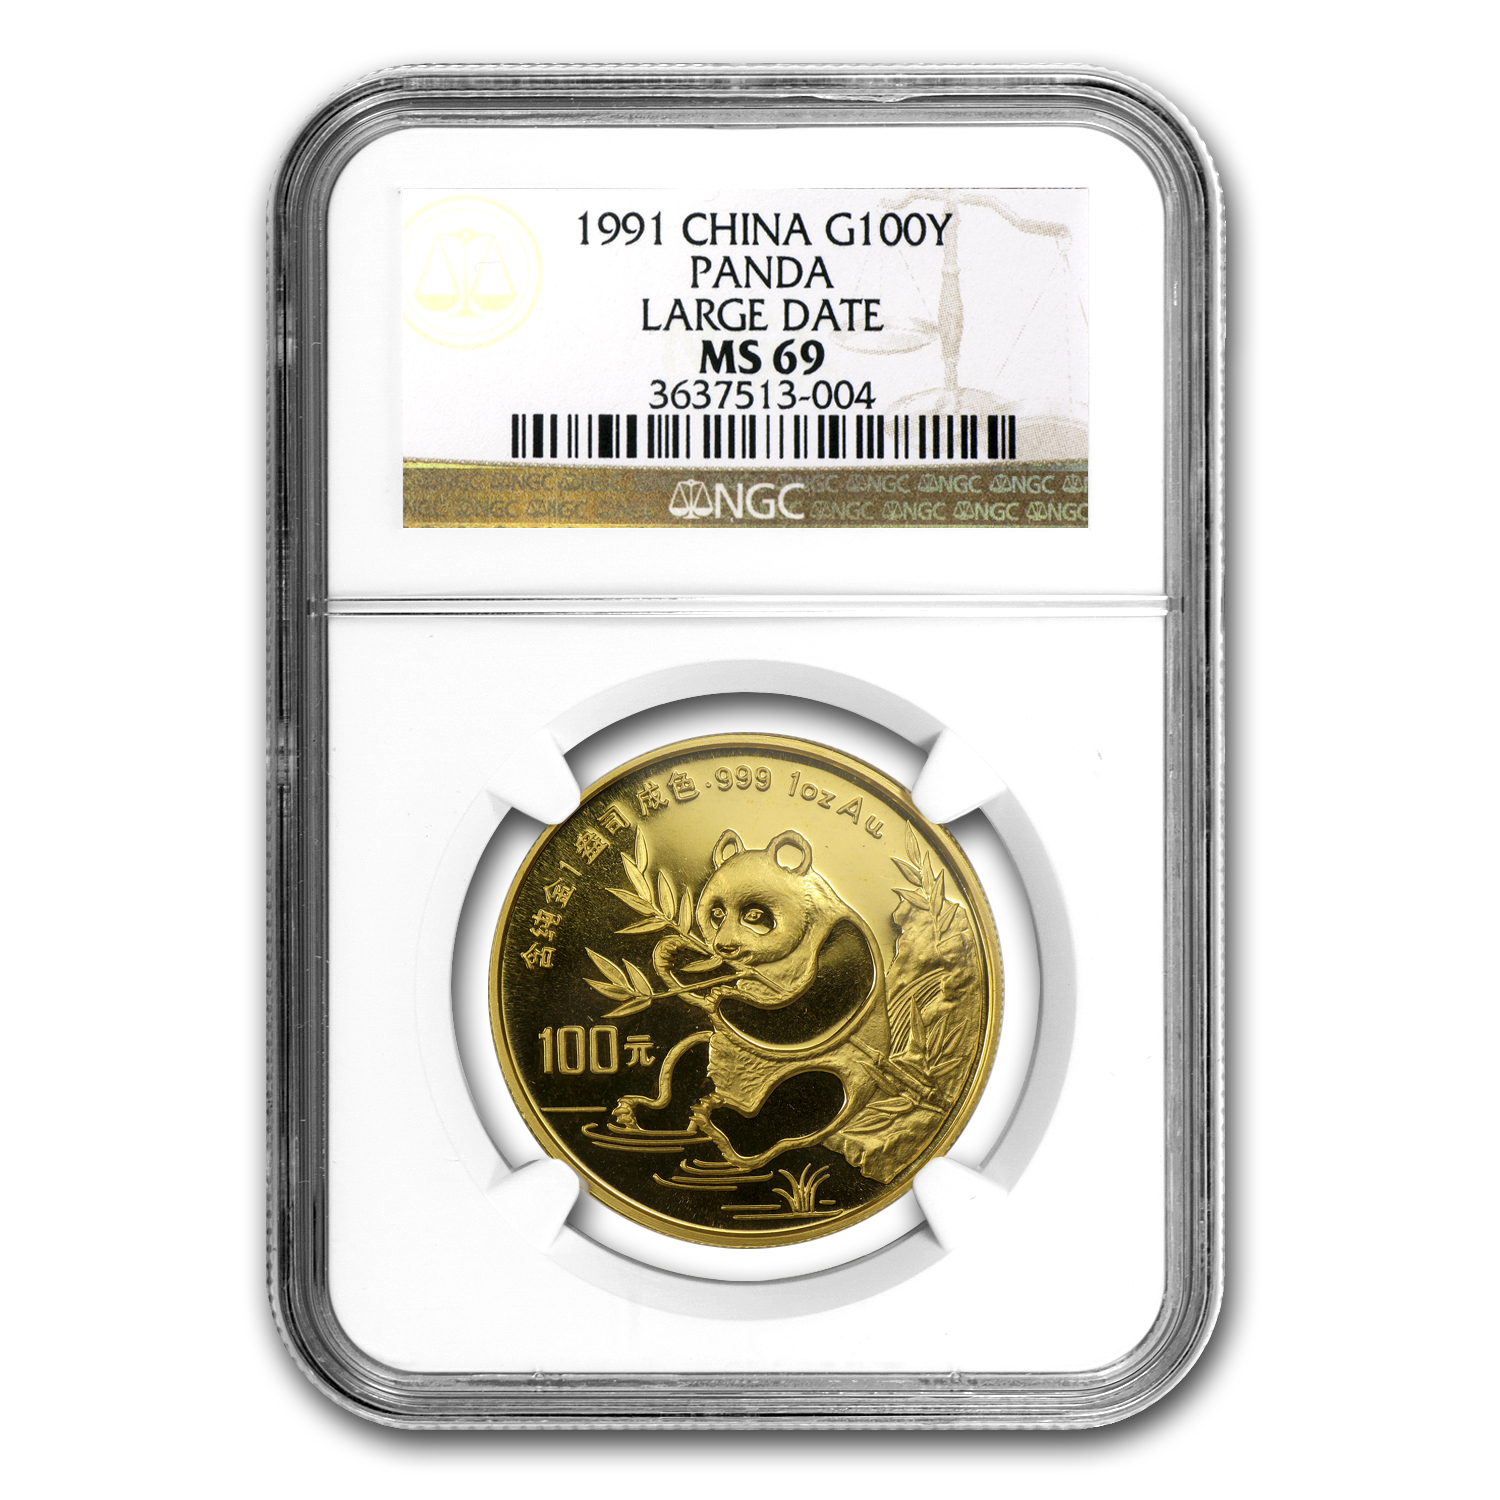 1991 1 oz Gold Chinese Panda MS-69 NGC - Large Date